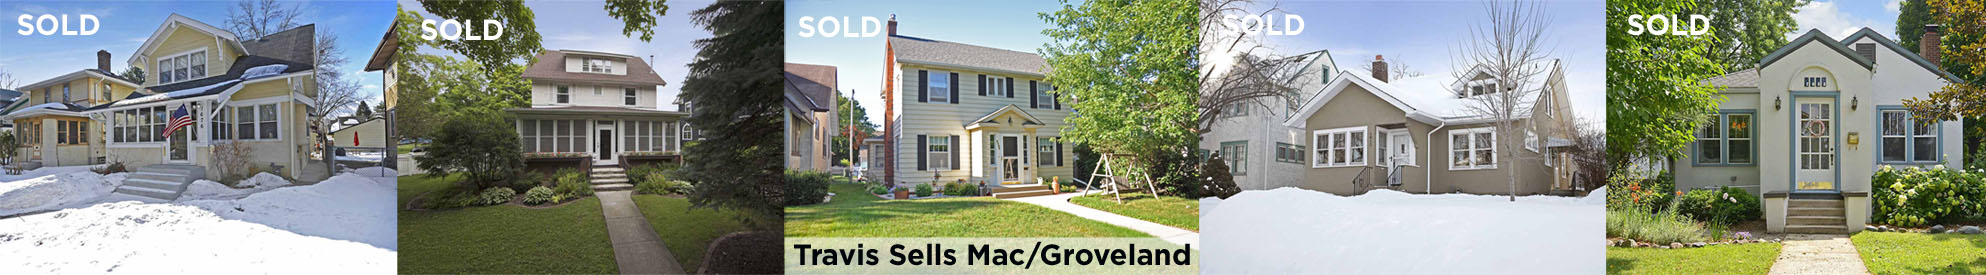 Mac/Groveland Real Estate & Mac/Groveland St. Paul Homes For Sale